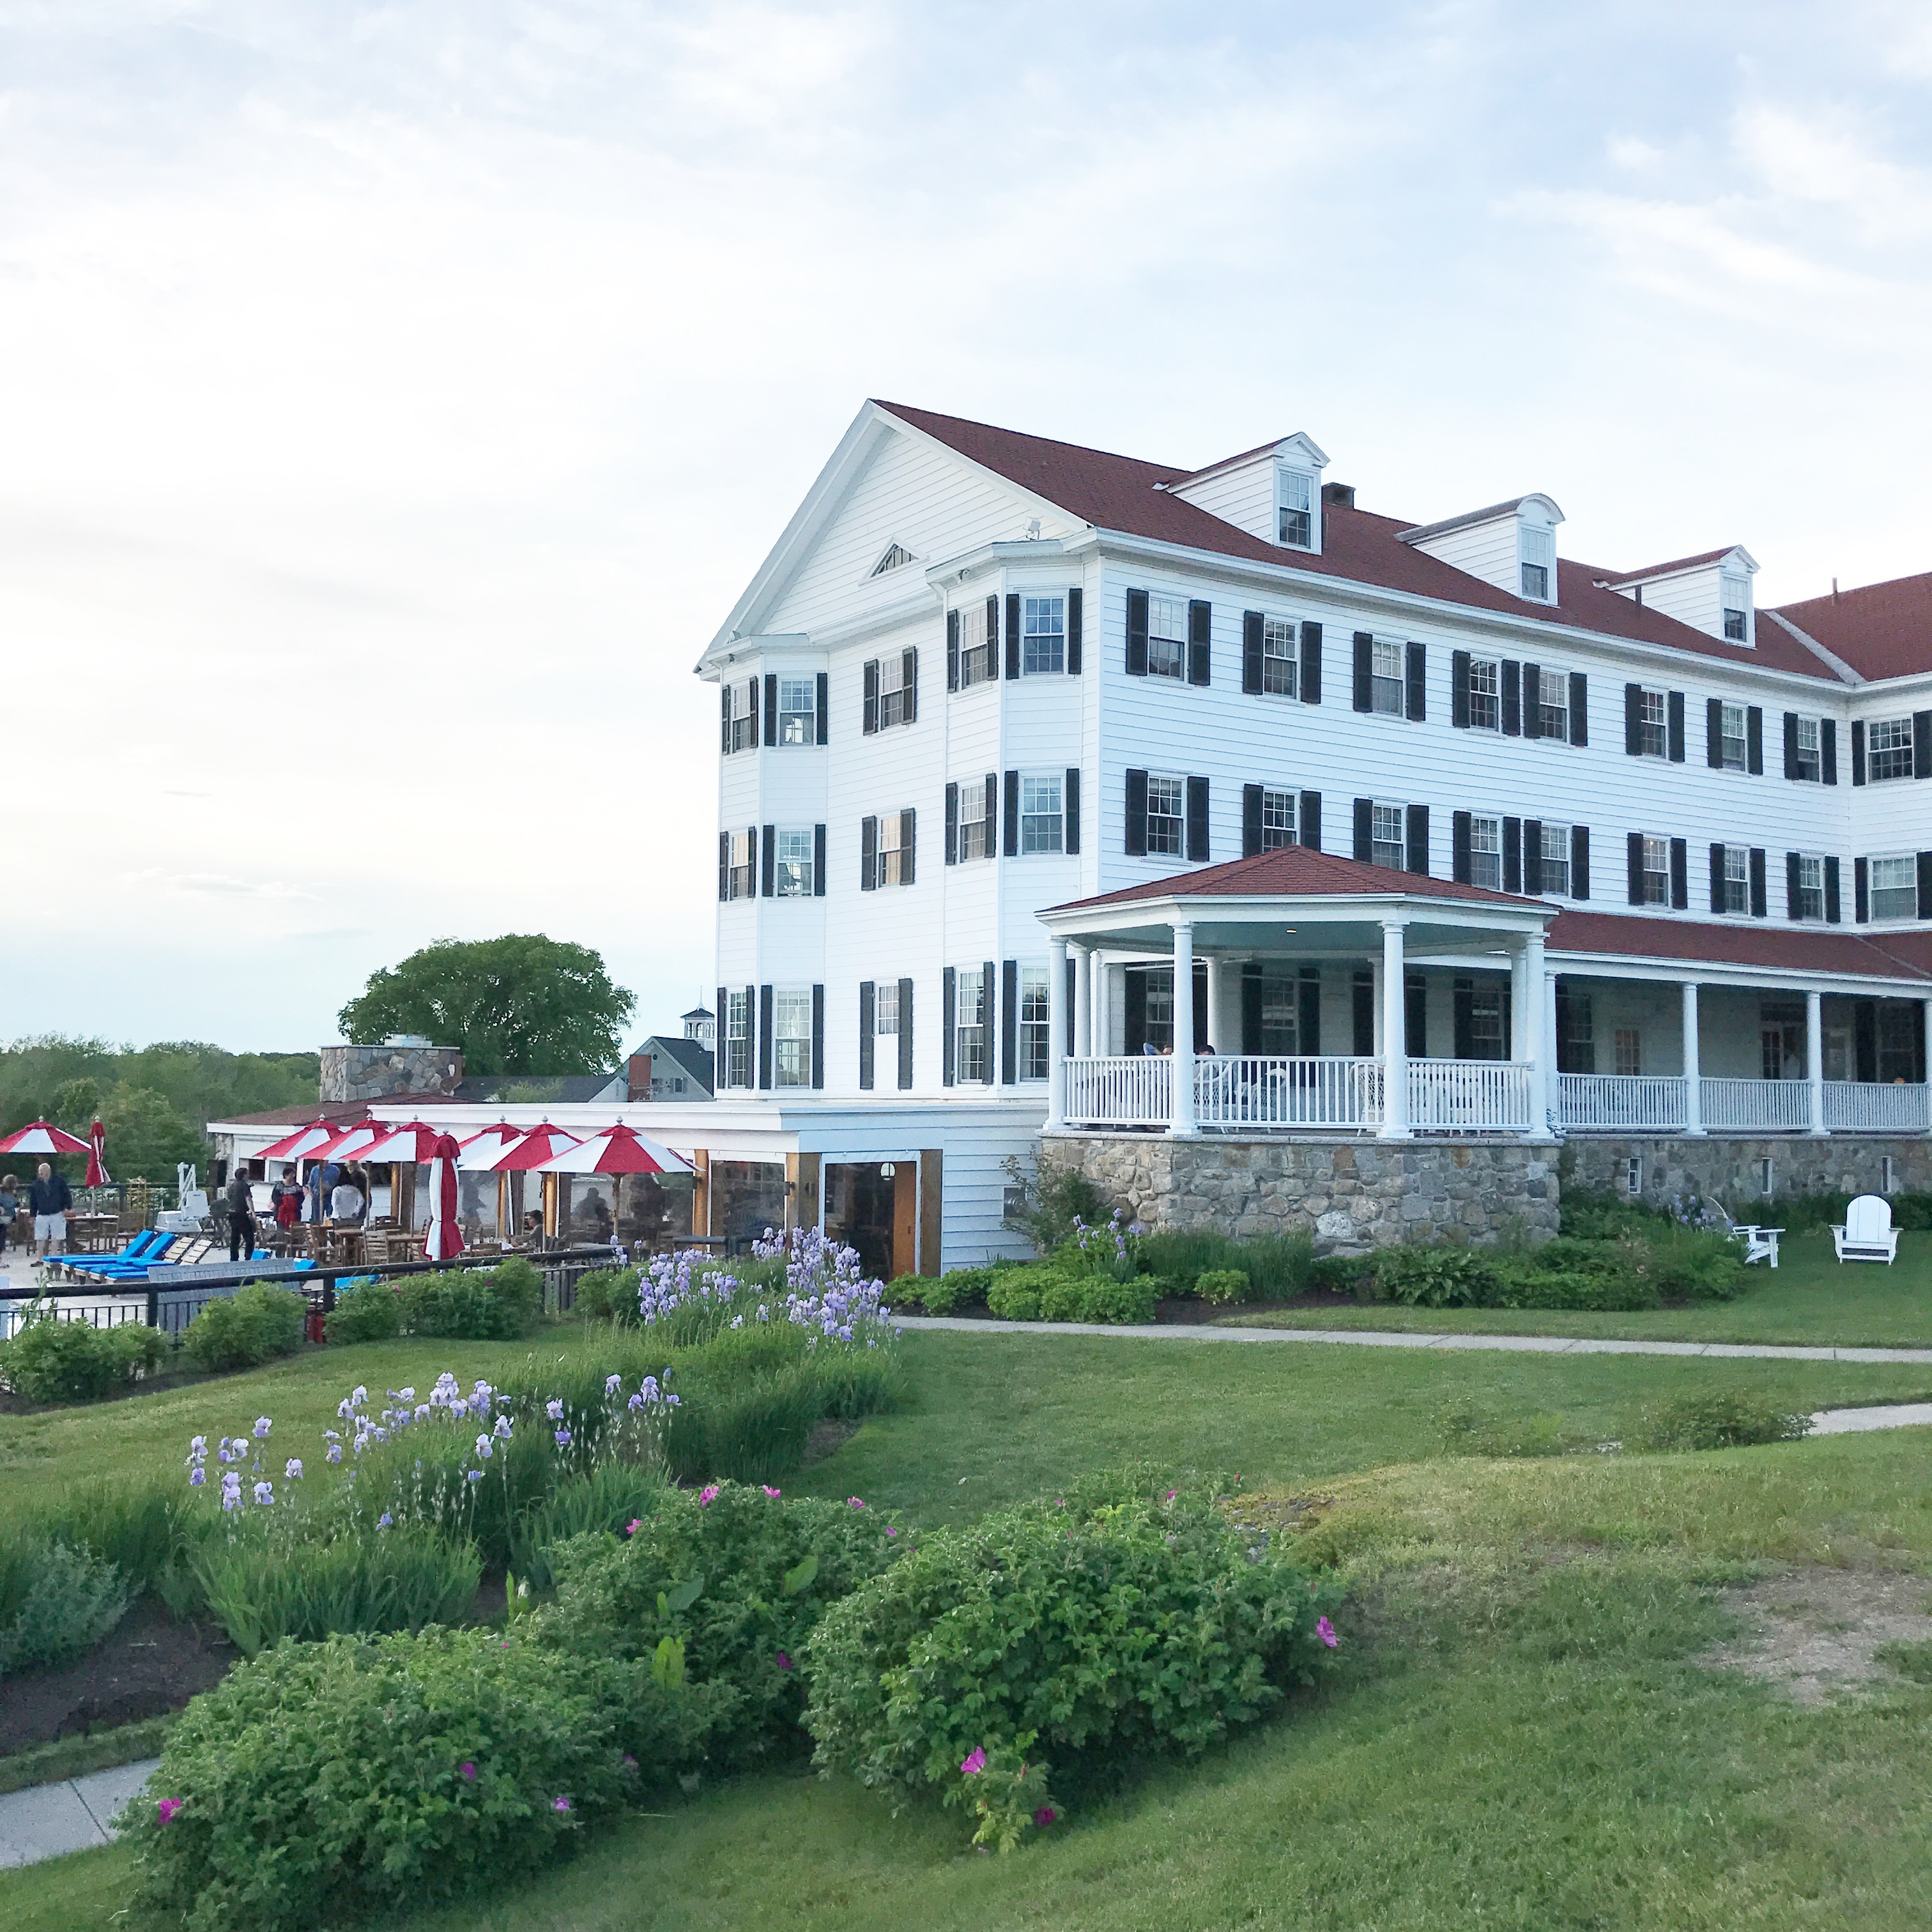 48 Hours in Kennebunkport, Maine